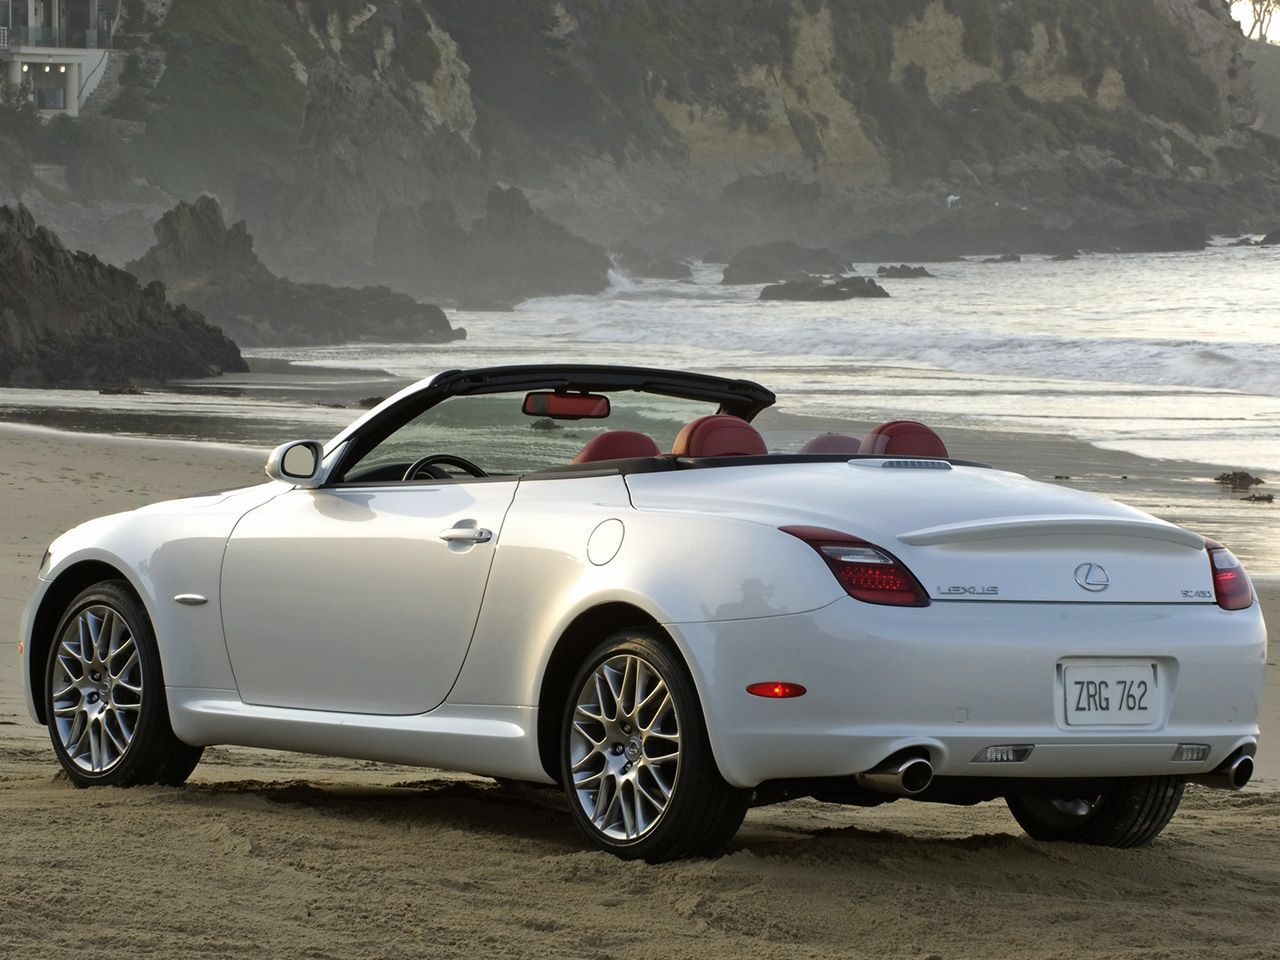 Lexus hardtop convertible favorite color would be white with red interior